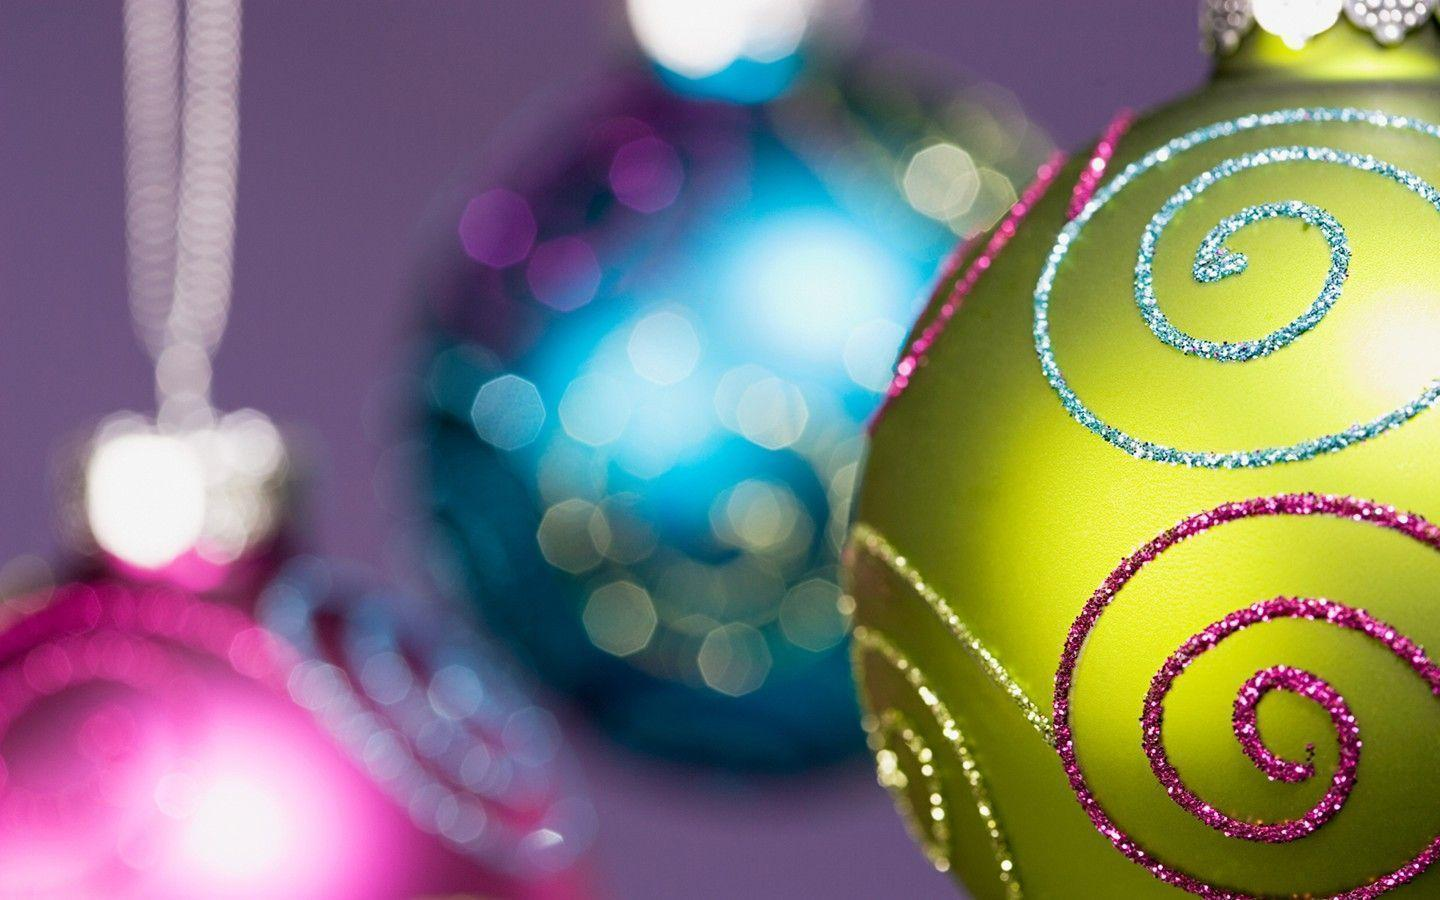 Colorful Christmas ornaments wallpaper 31158 - Christmas - Festival